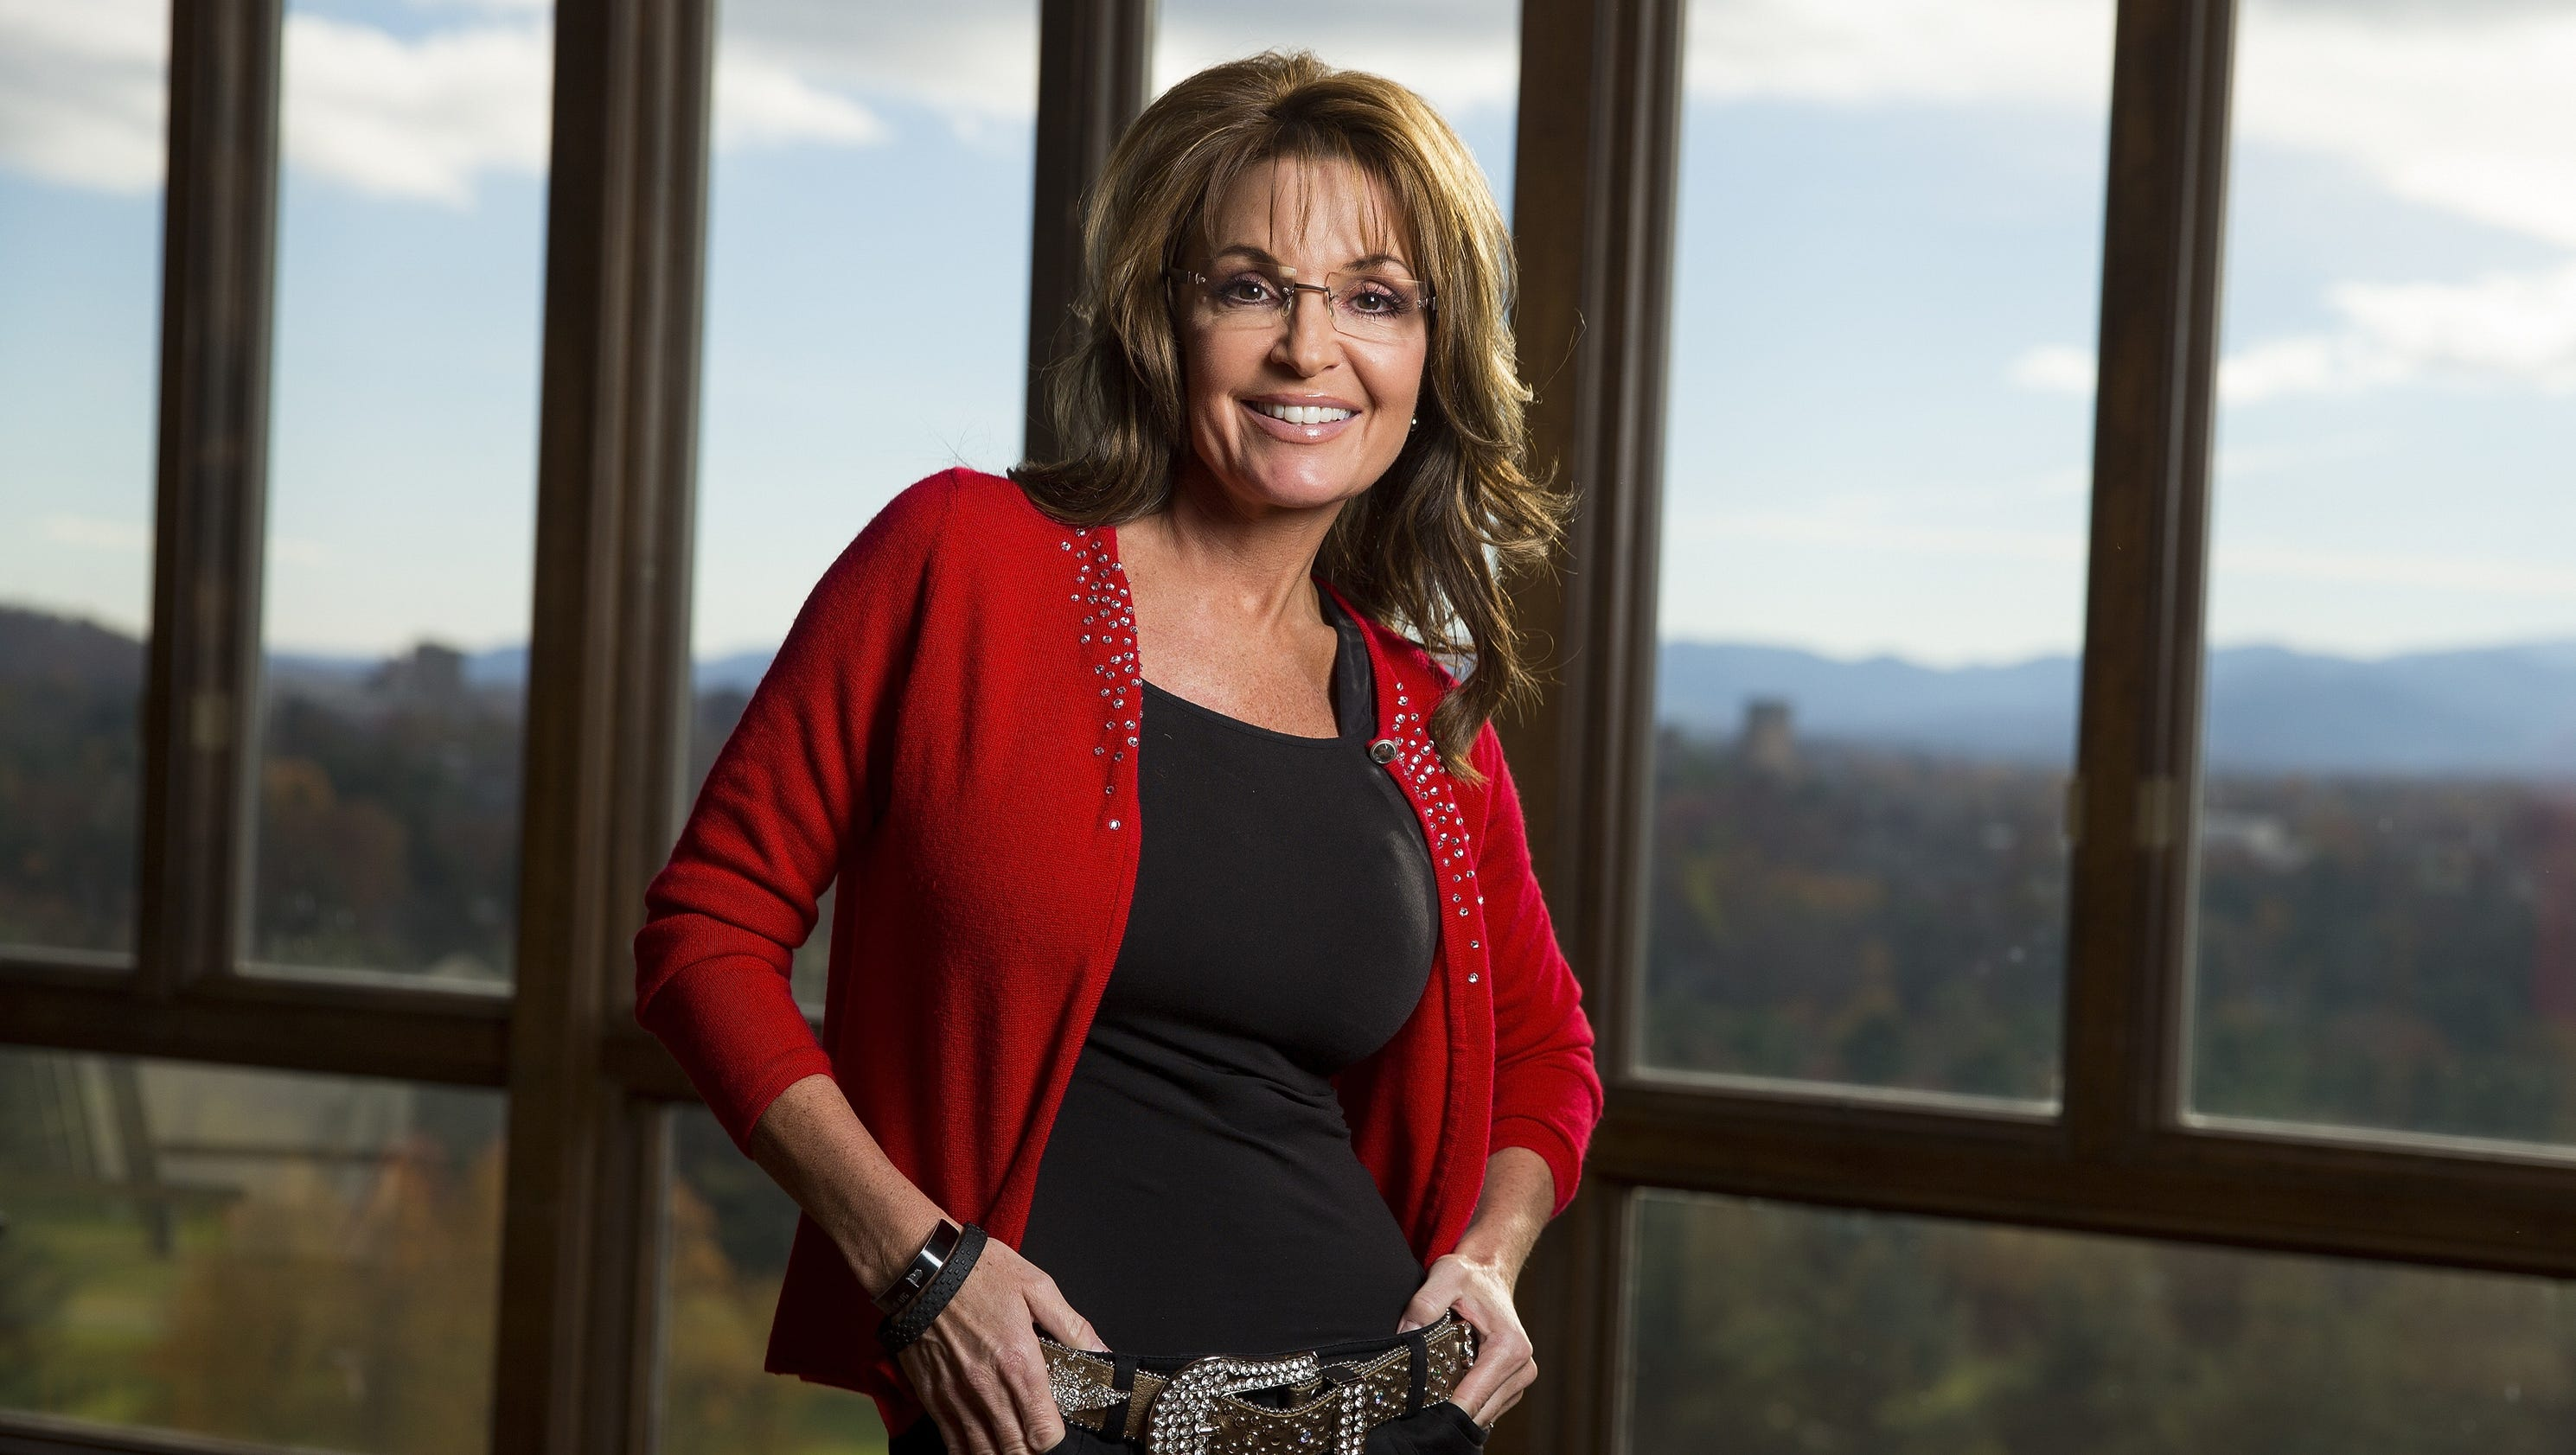 Will Sarah Palin Have A Second Act